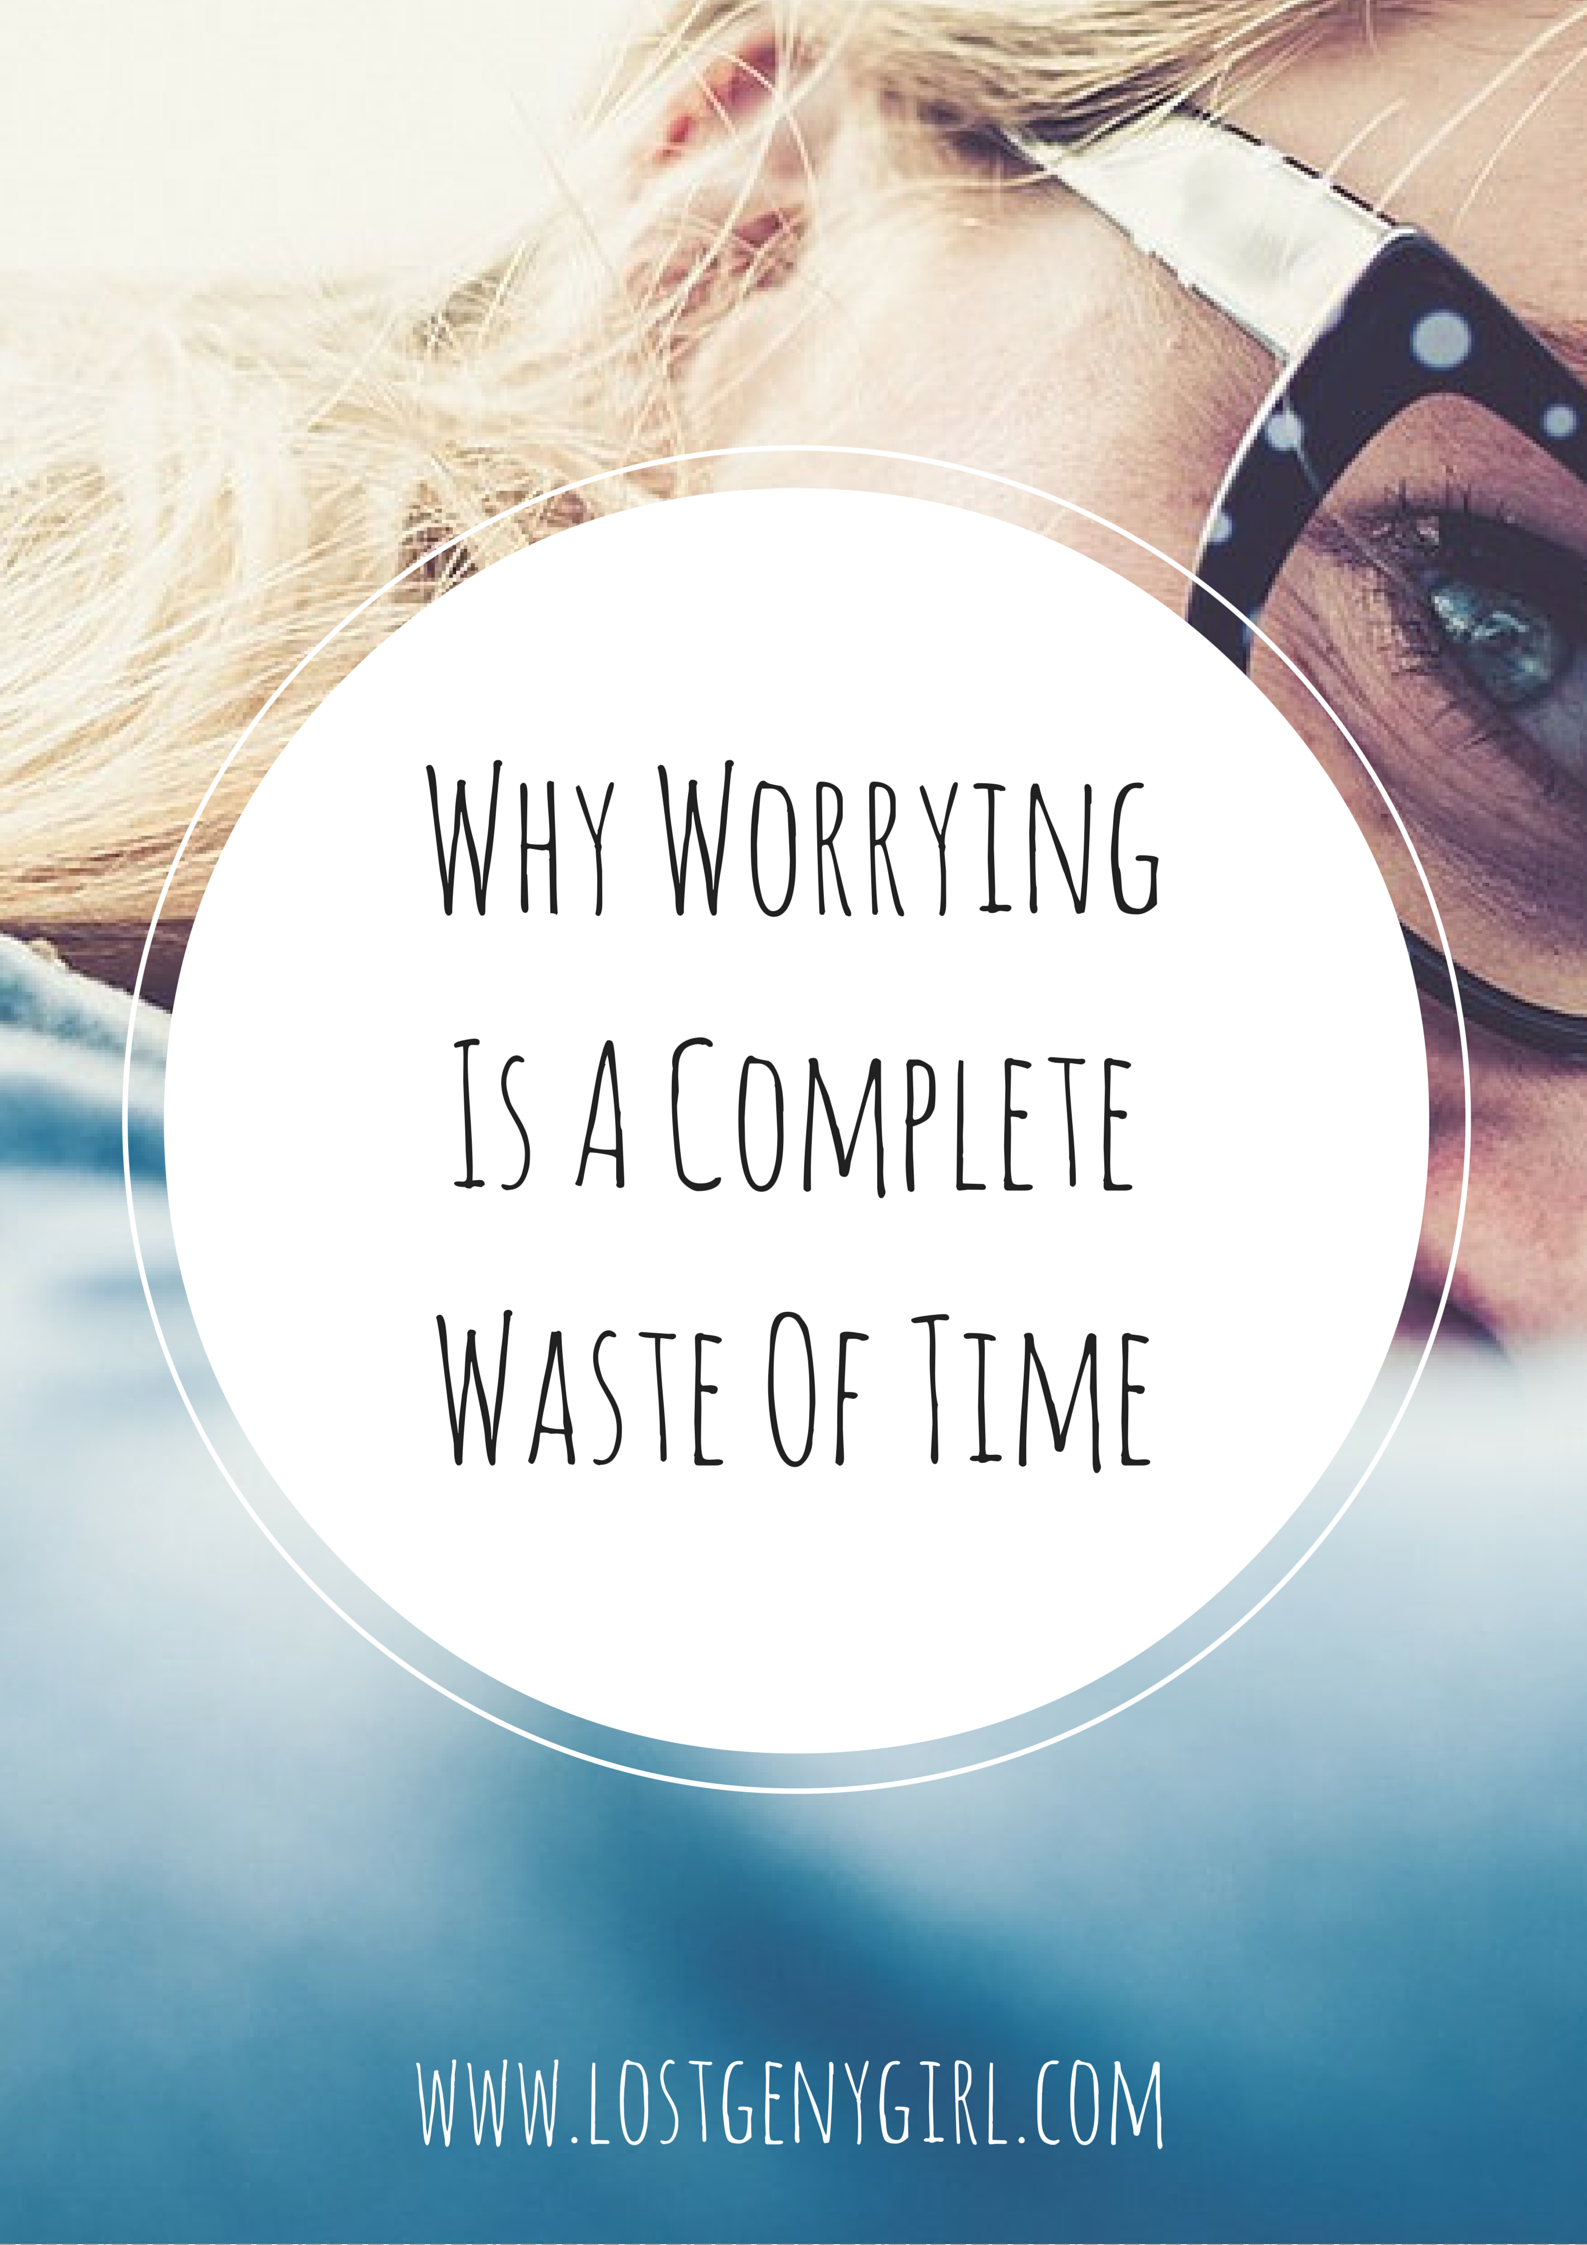 Why-Worrying-Is-A-Complete-Waste-Of-Time